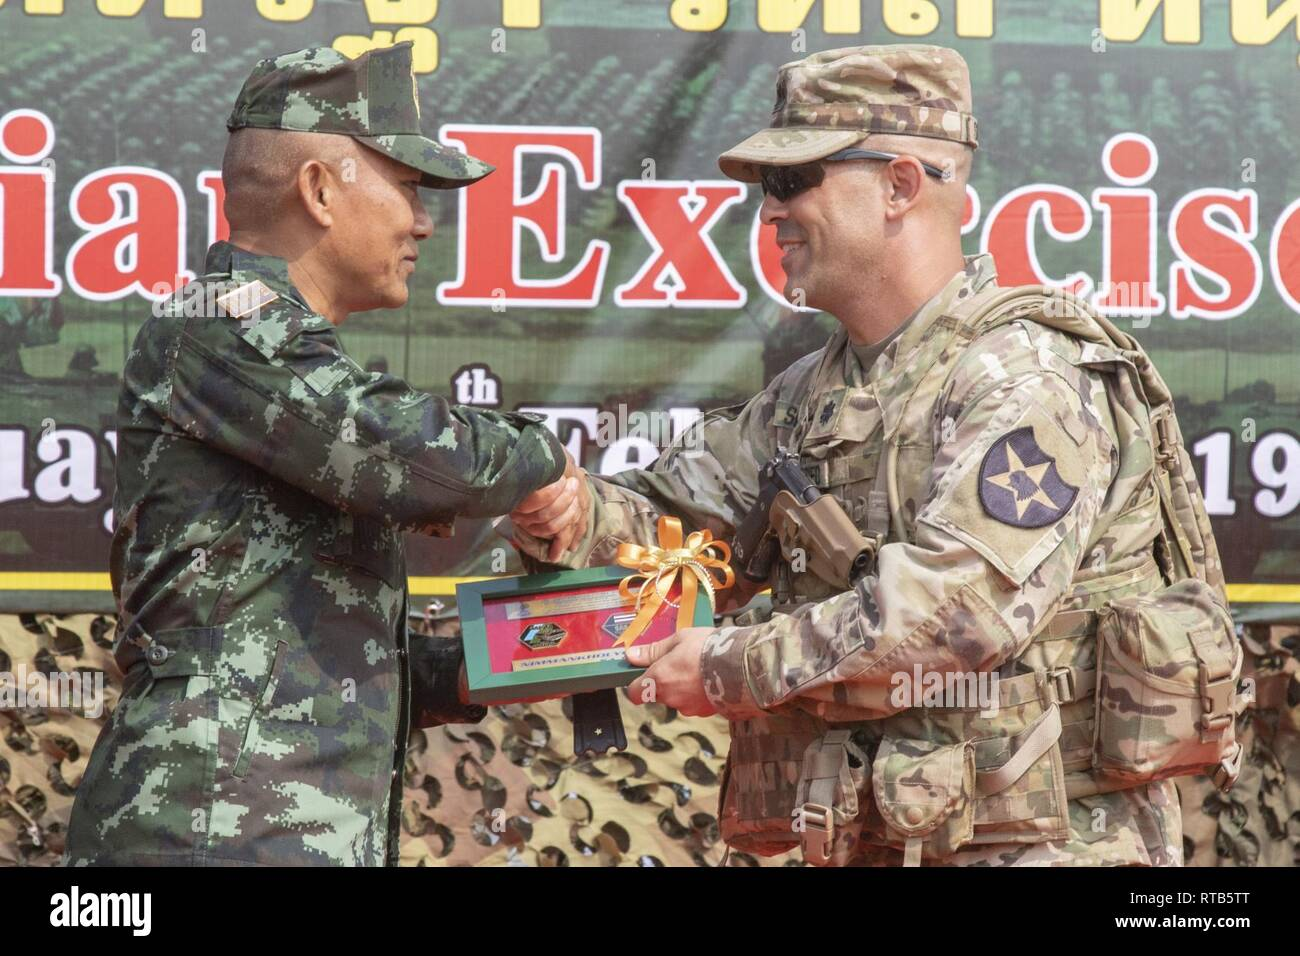 Scott Siegfried, commander of 5th Battalion, 20th Infantry Regiment, formally exchange gifts between ...